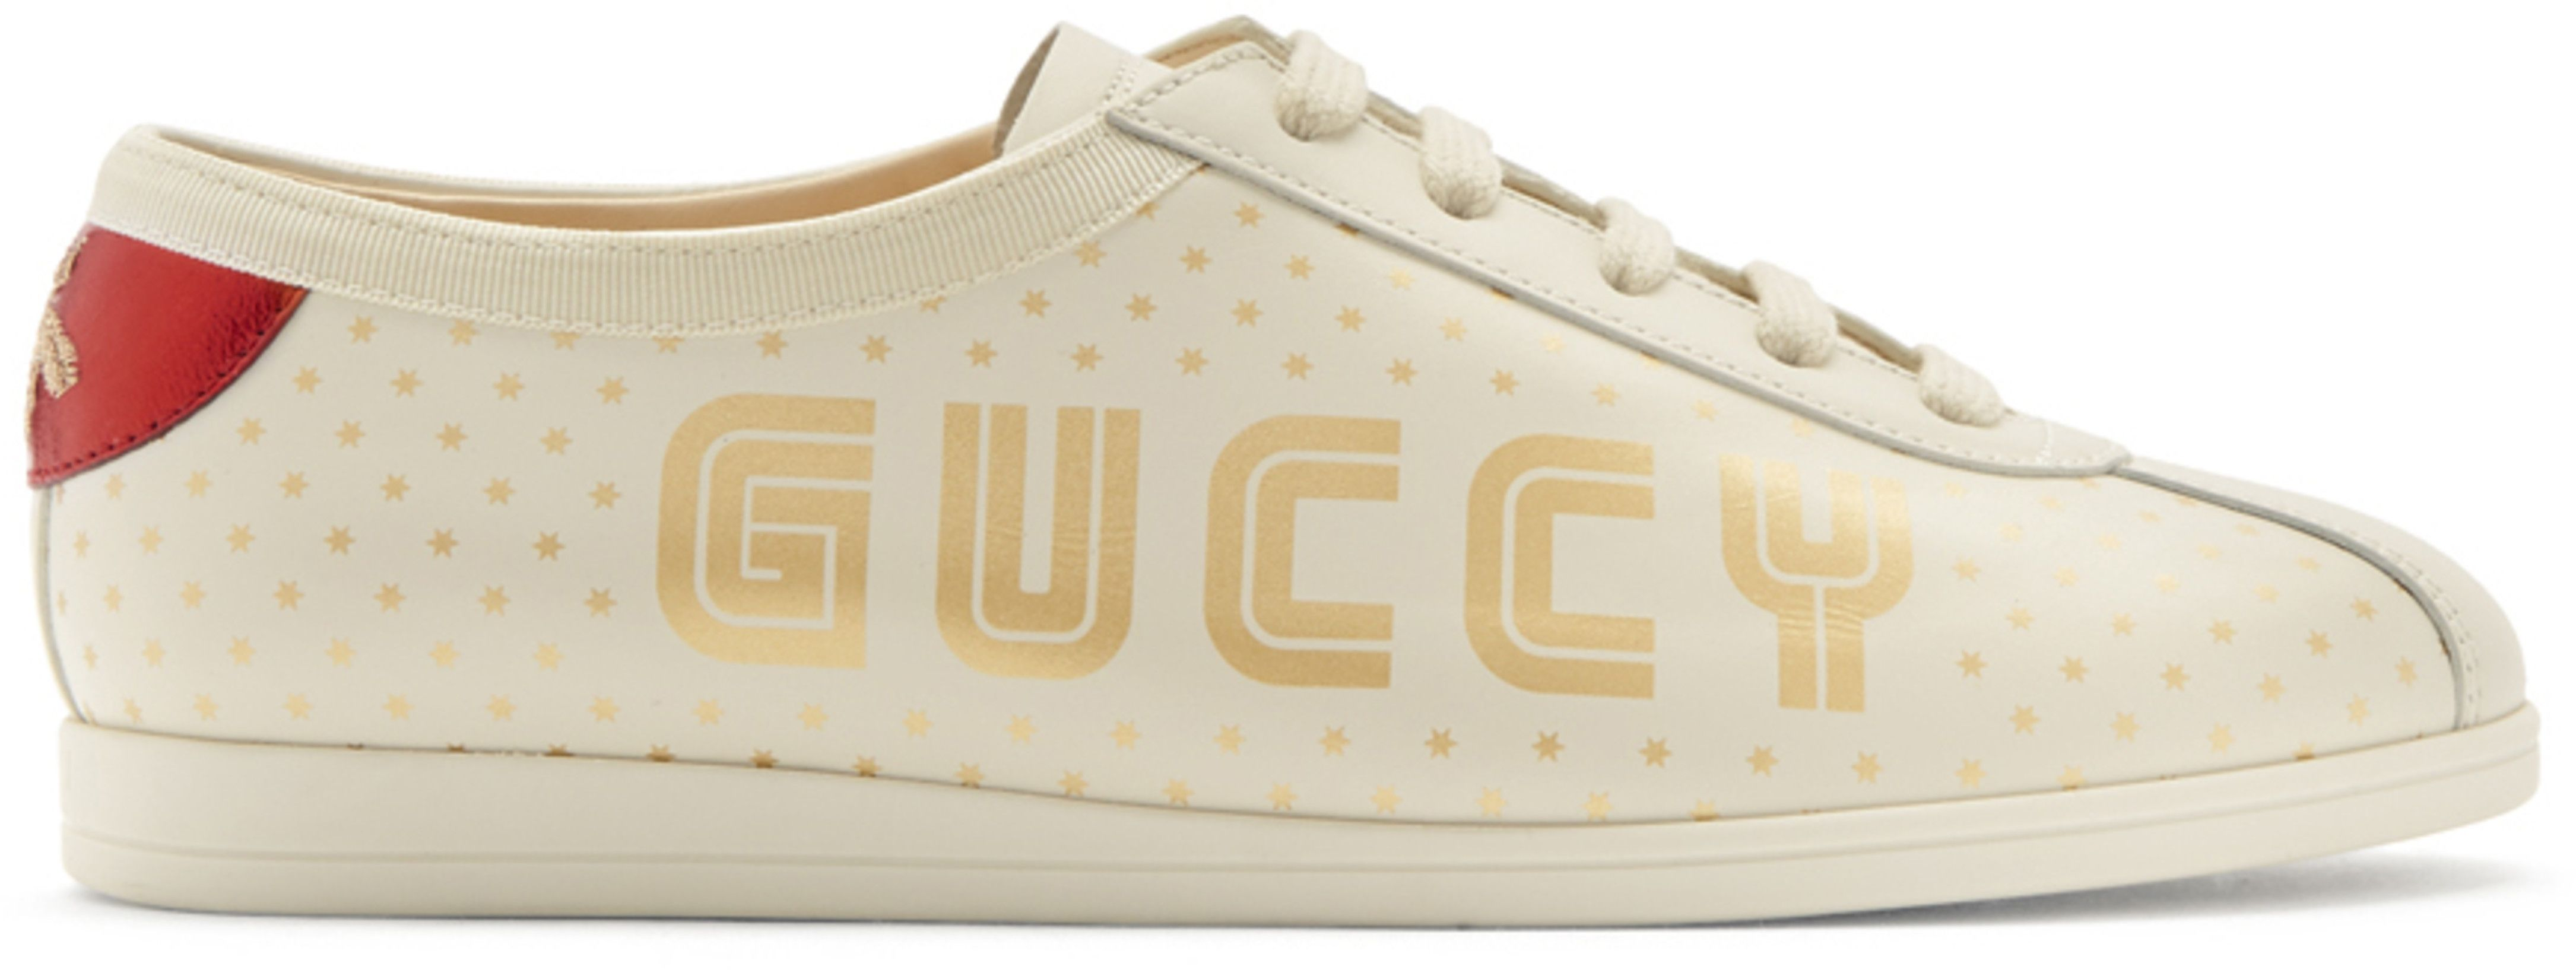 74ee60969 Gucci - White Sega 'Guccy' Falacer Bowling Sneakers | Sneaker fix ...